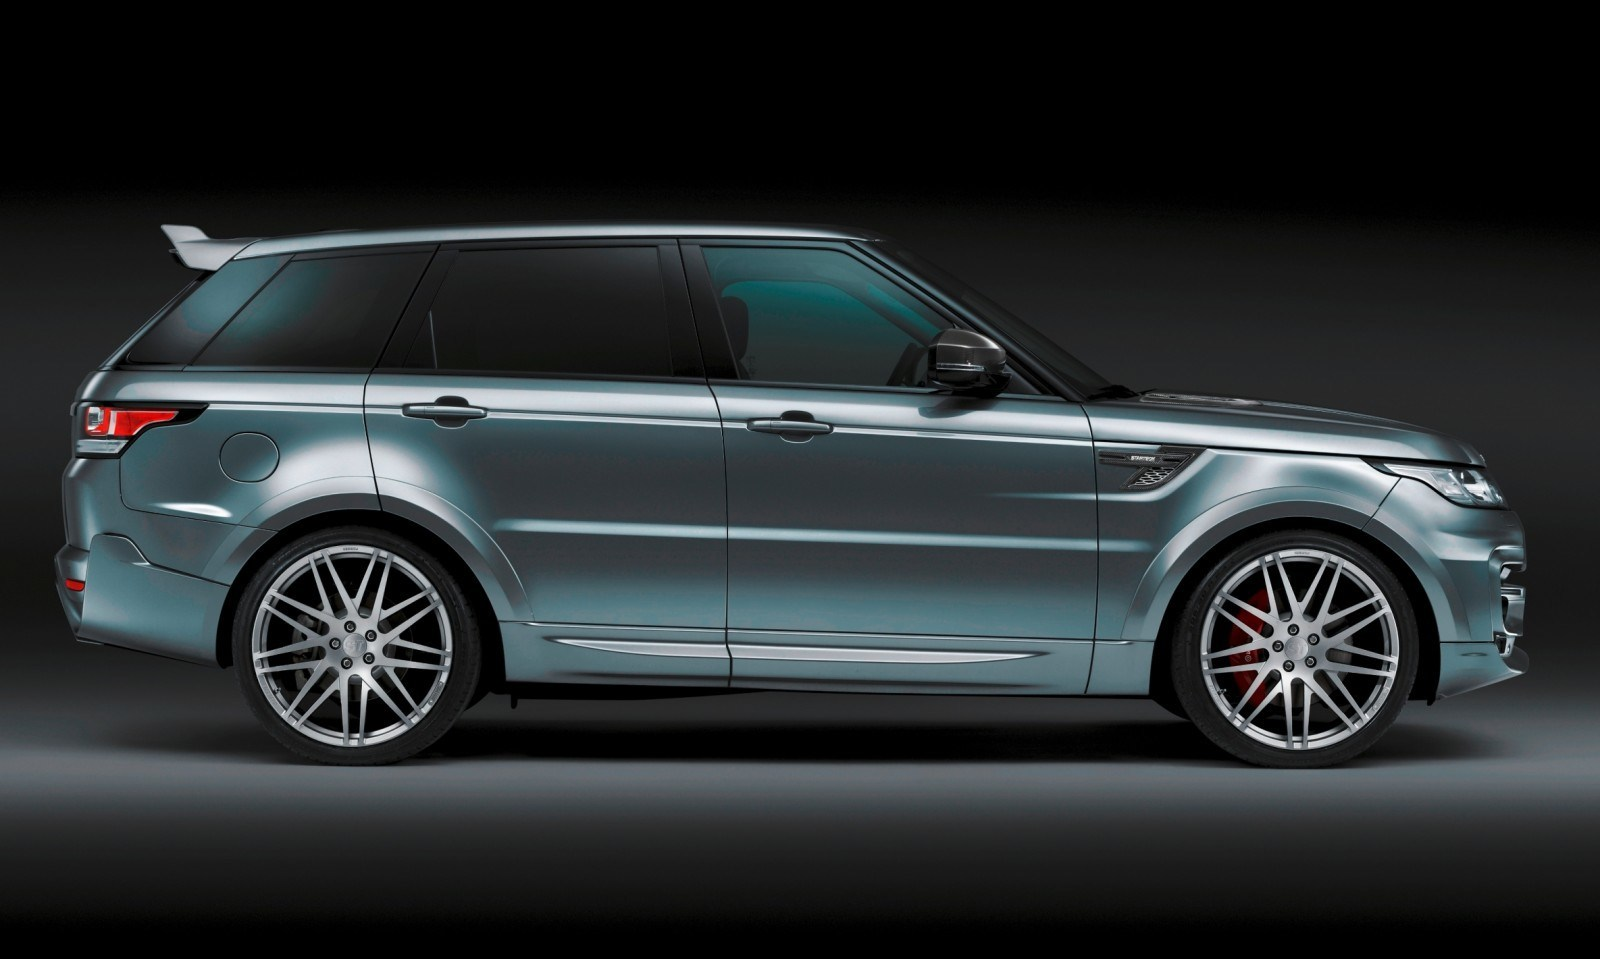 2014 Range Rover Sport STARTECH Widebody on 23-Inch Wheels Looks Amazing 3